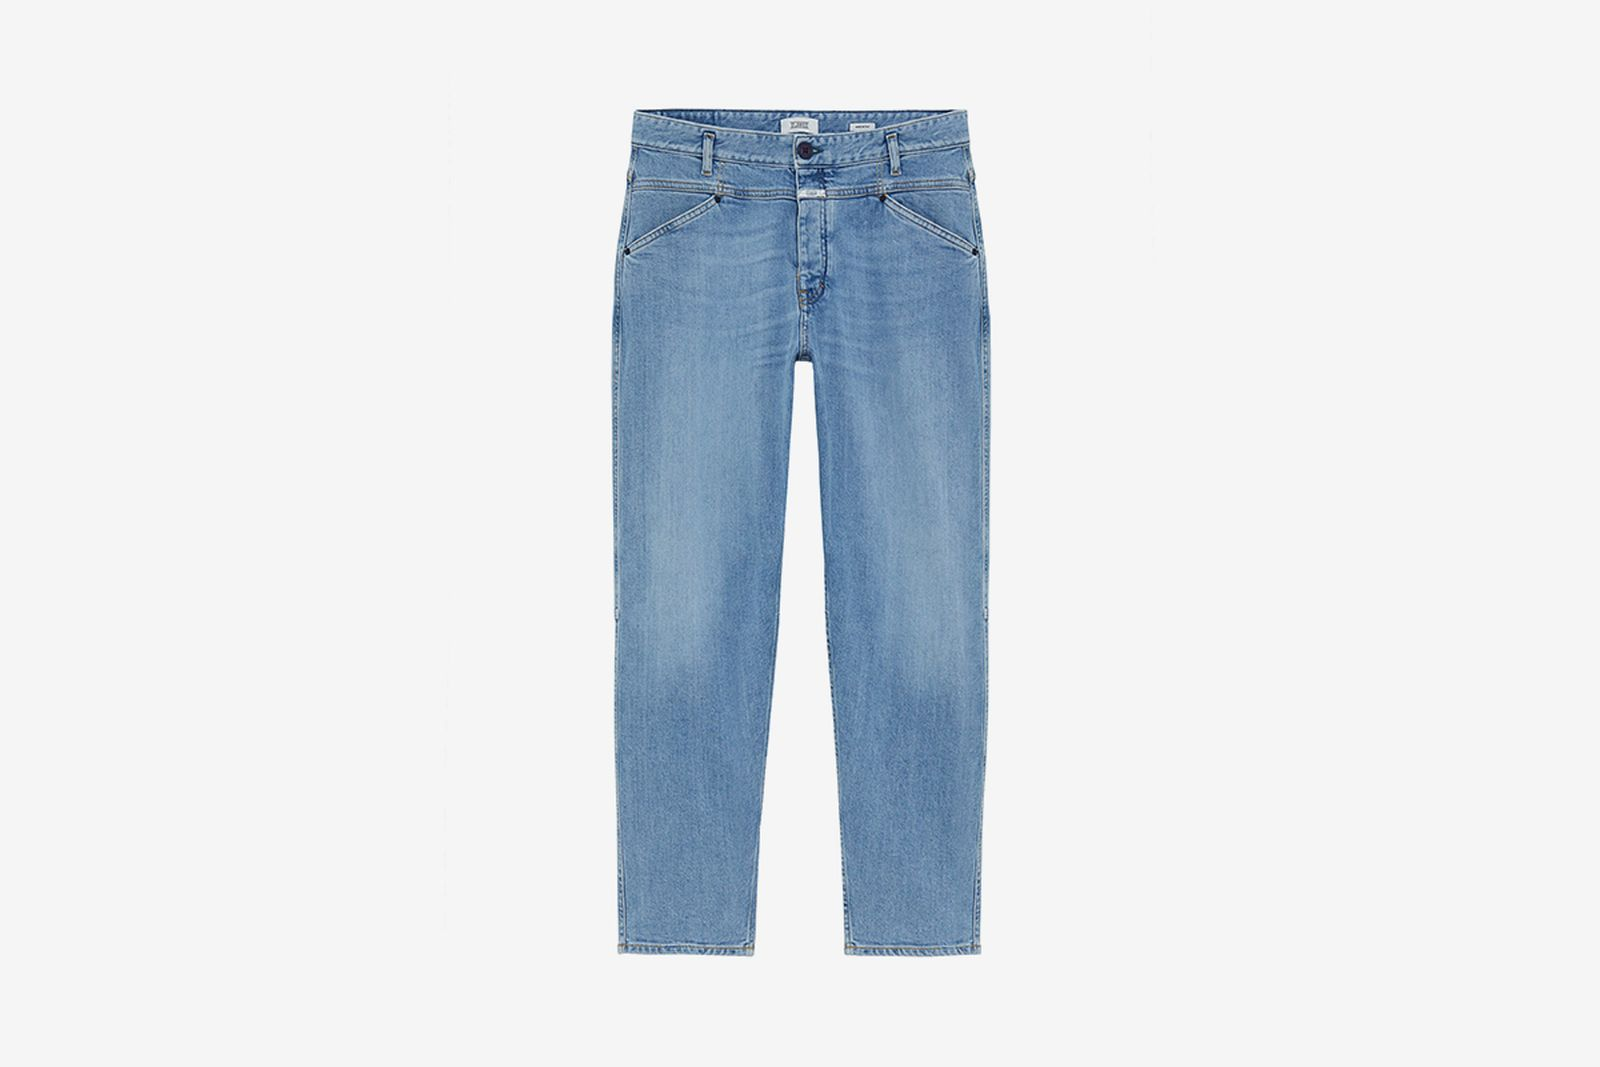 closed-degradable-denim-products-06